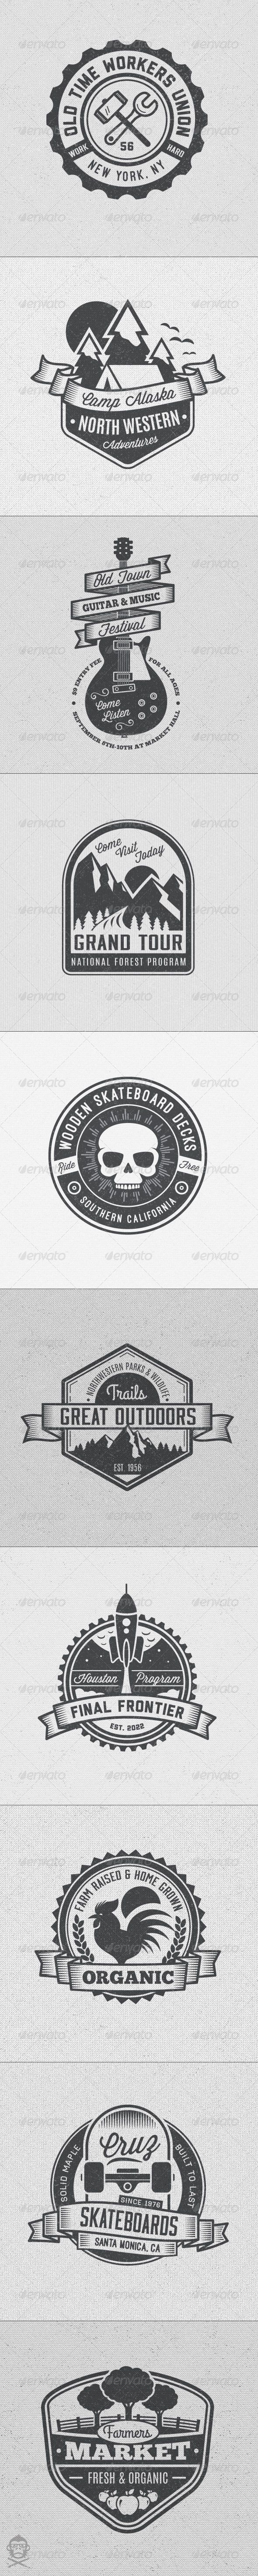 Vintage Style Badges and Logos Template | Buy and Download: http://graphicriver.net/item/vintage-style-badges-and-logos-vol-4/8594929?WT.ac=category_thumb&WT.z_author=GraphicMonkee&ref=ksioks